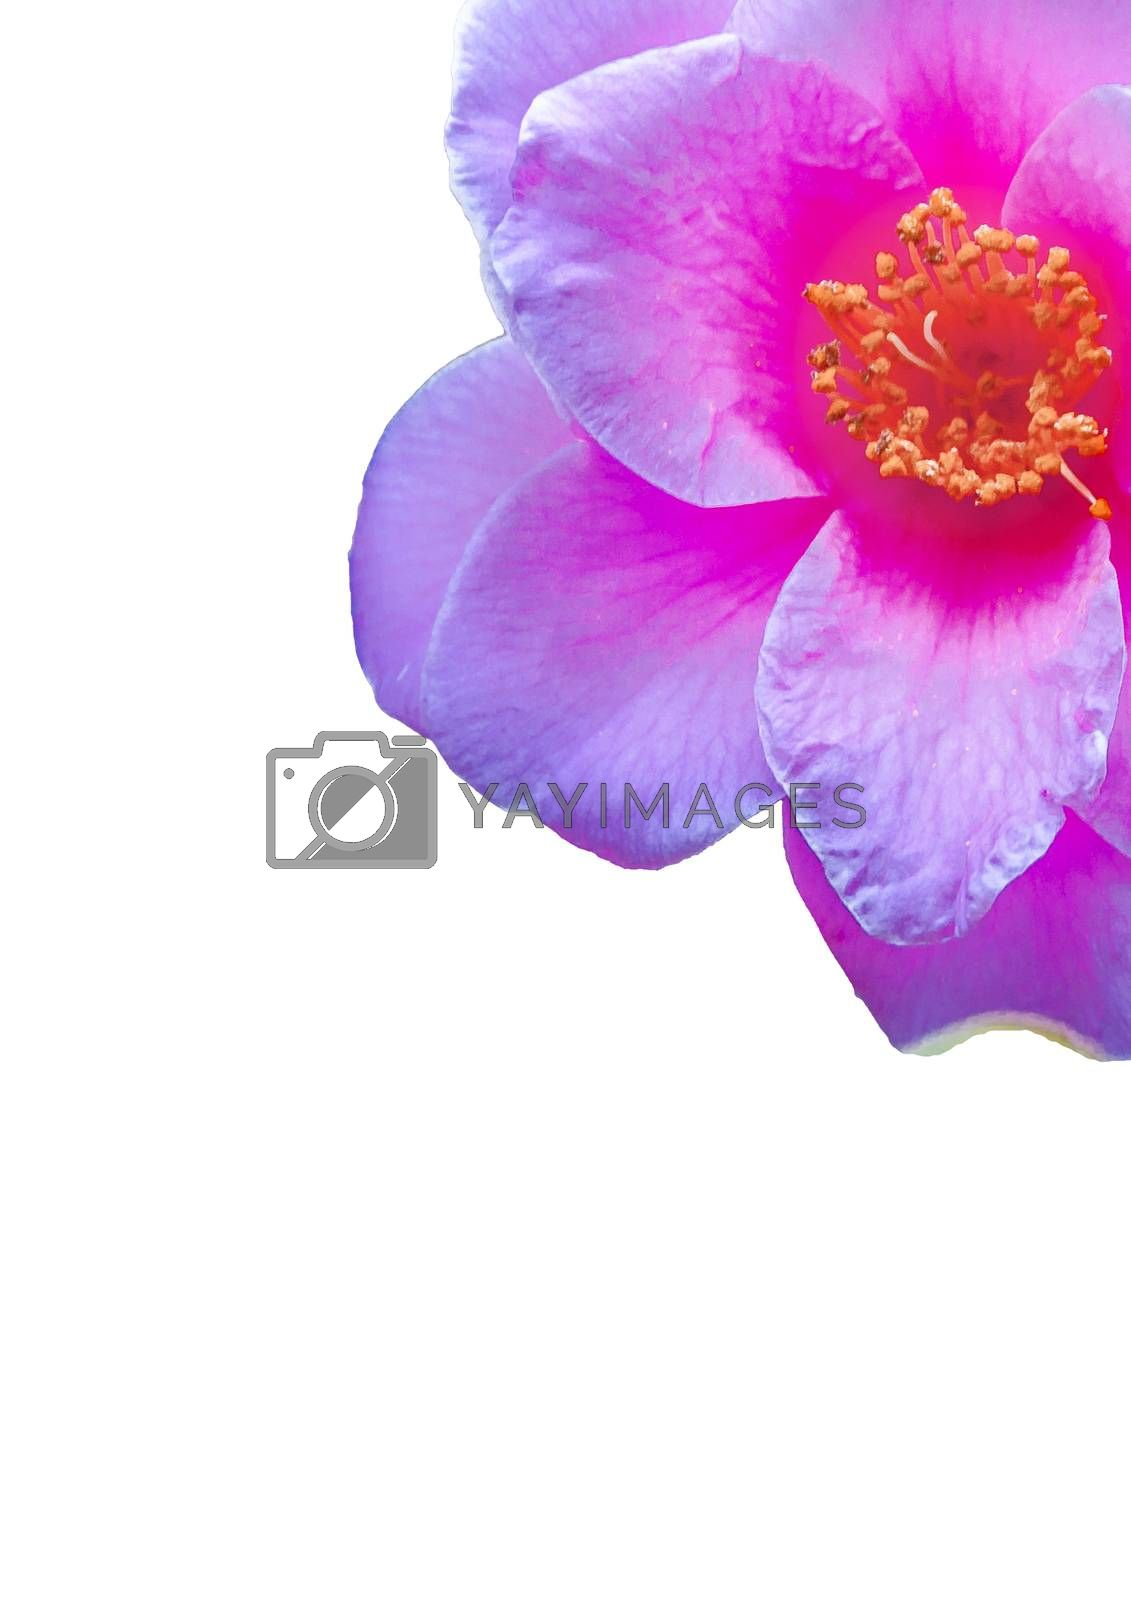 White background with violet flower border decoration